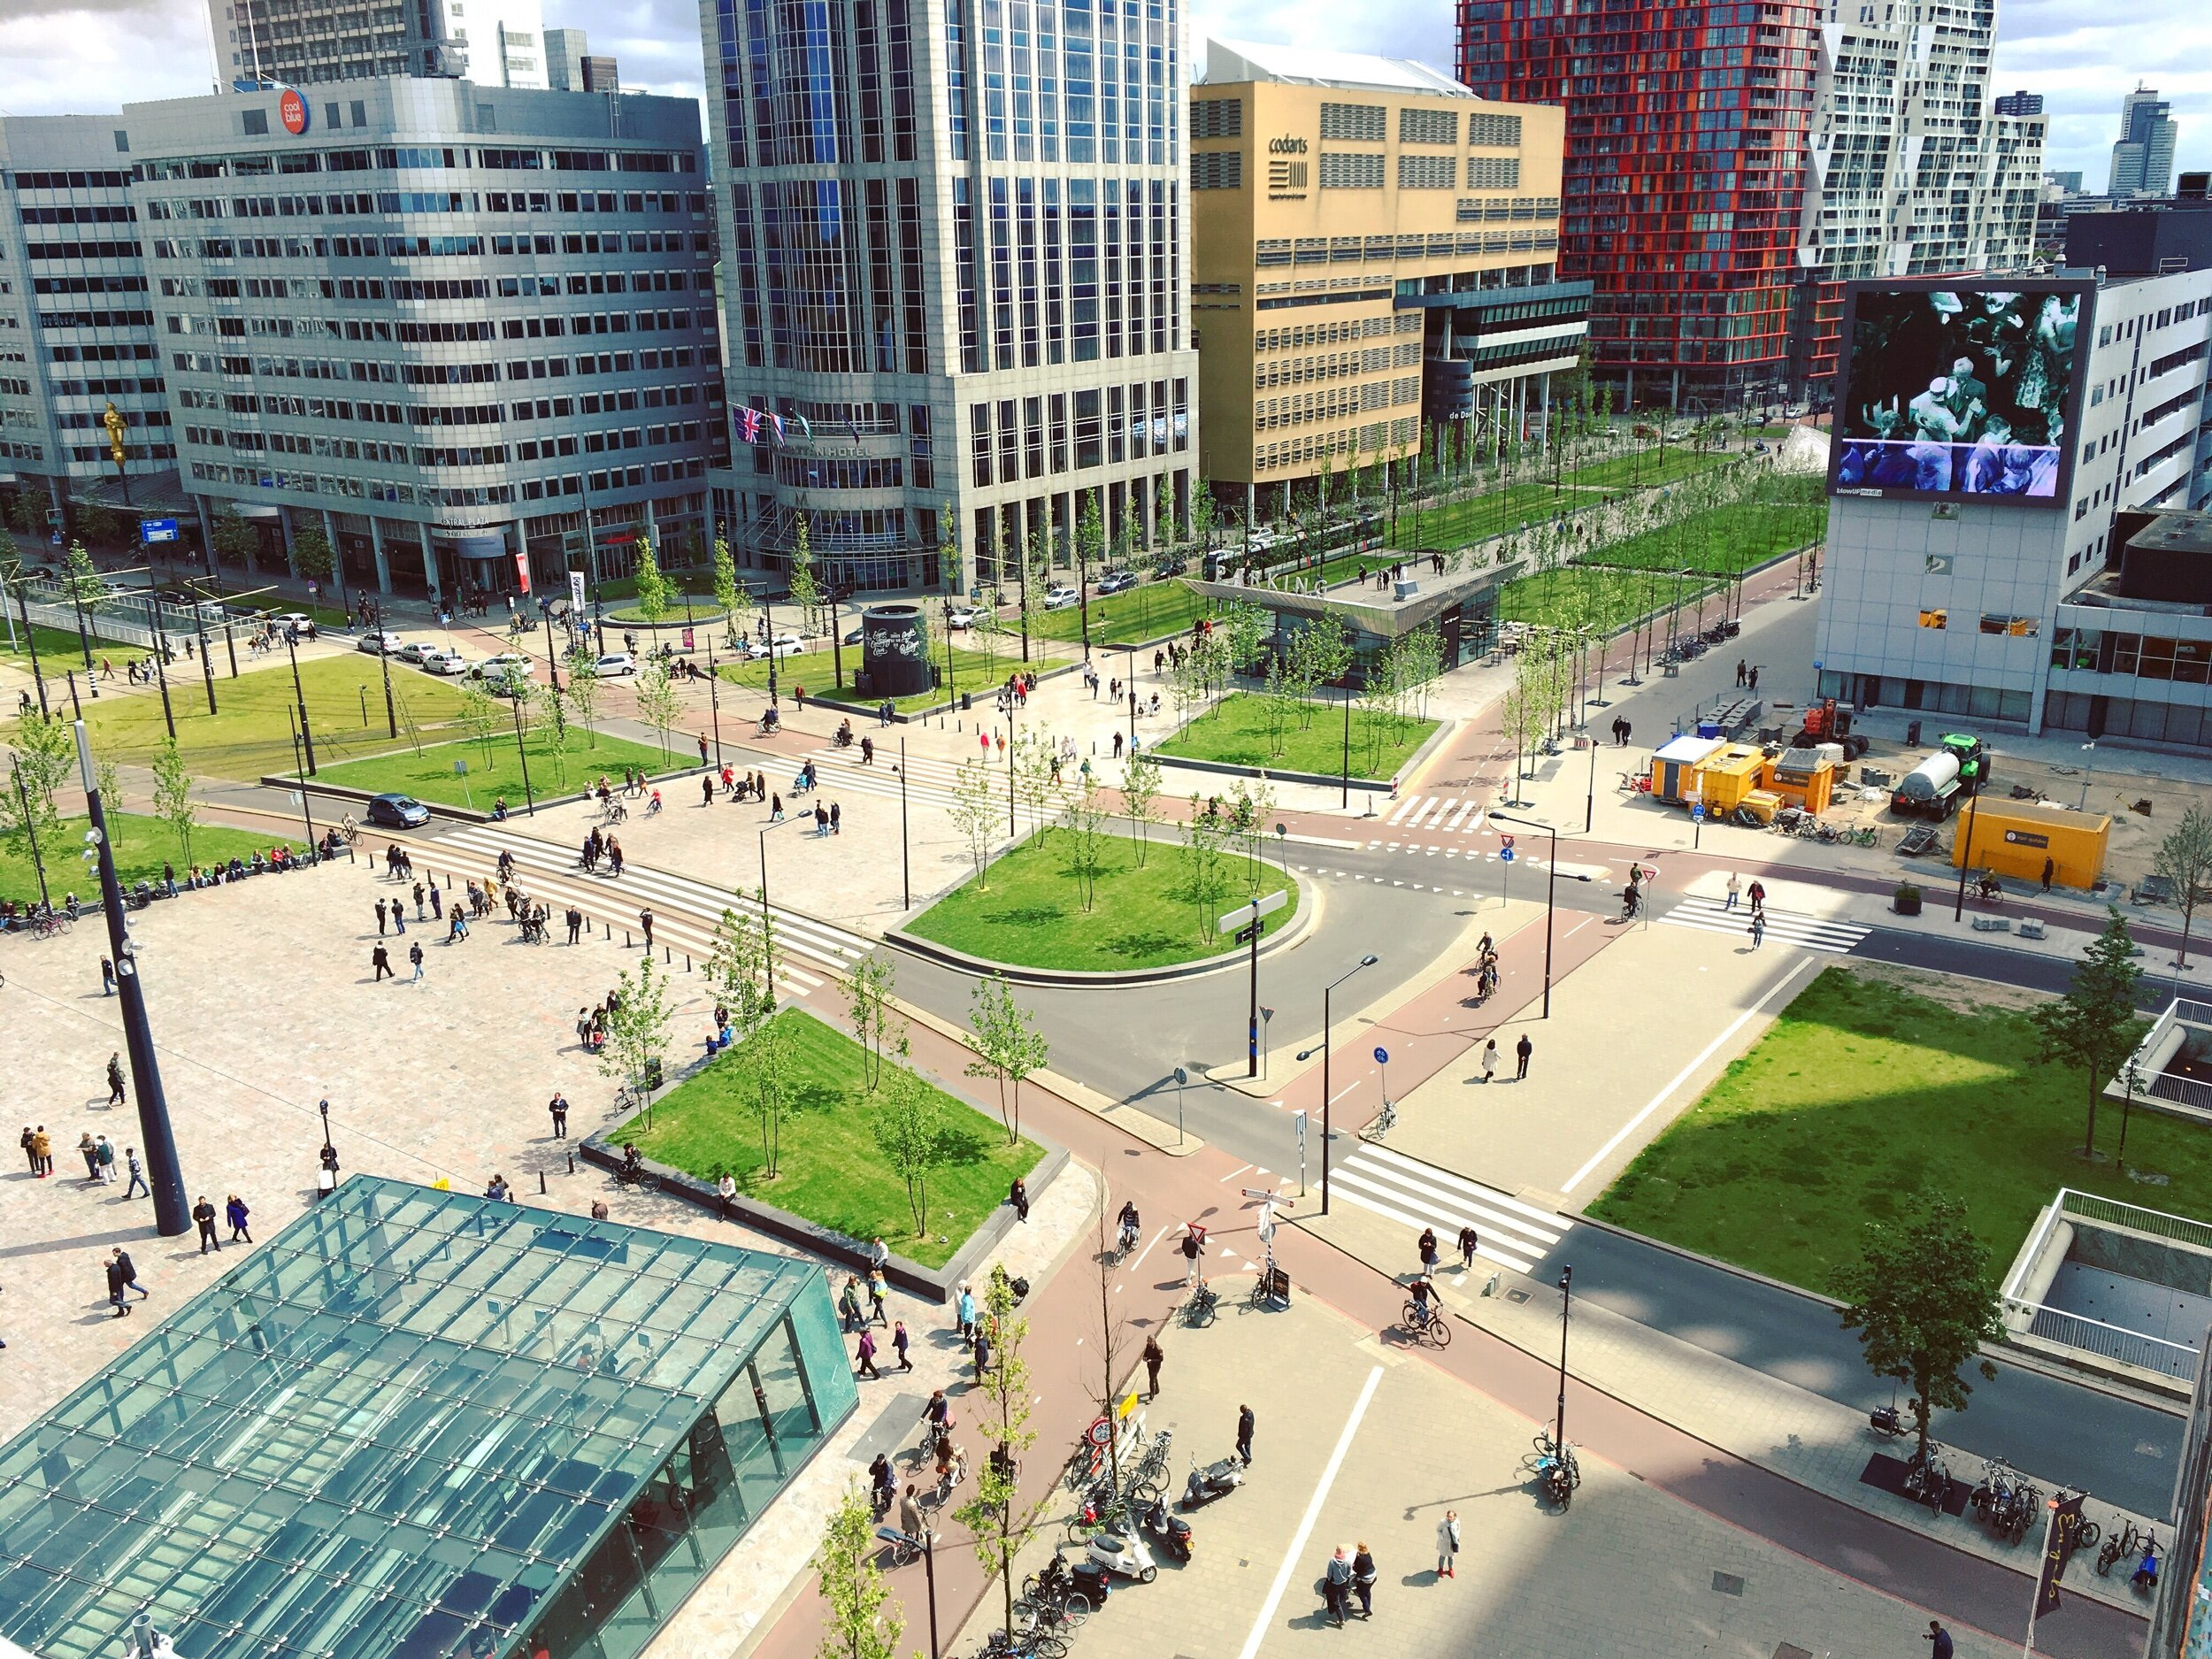 The area in front of Rotterdam's modern Central Station illustrate the complexities of infrastructure in Dutch city centers